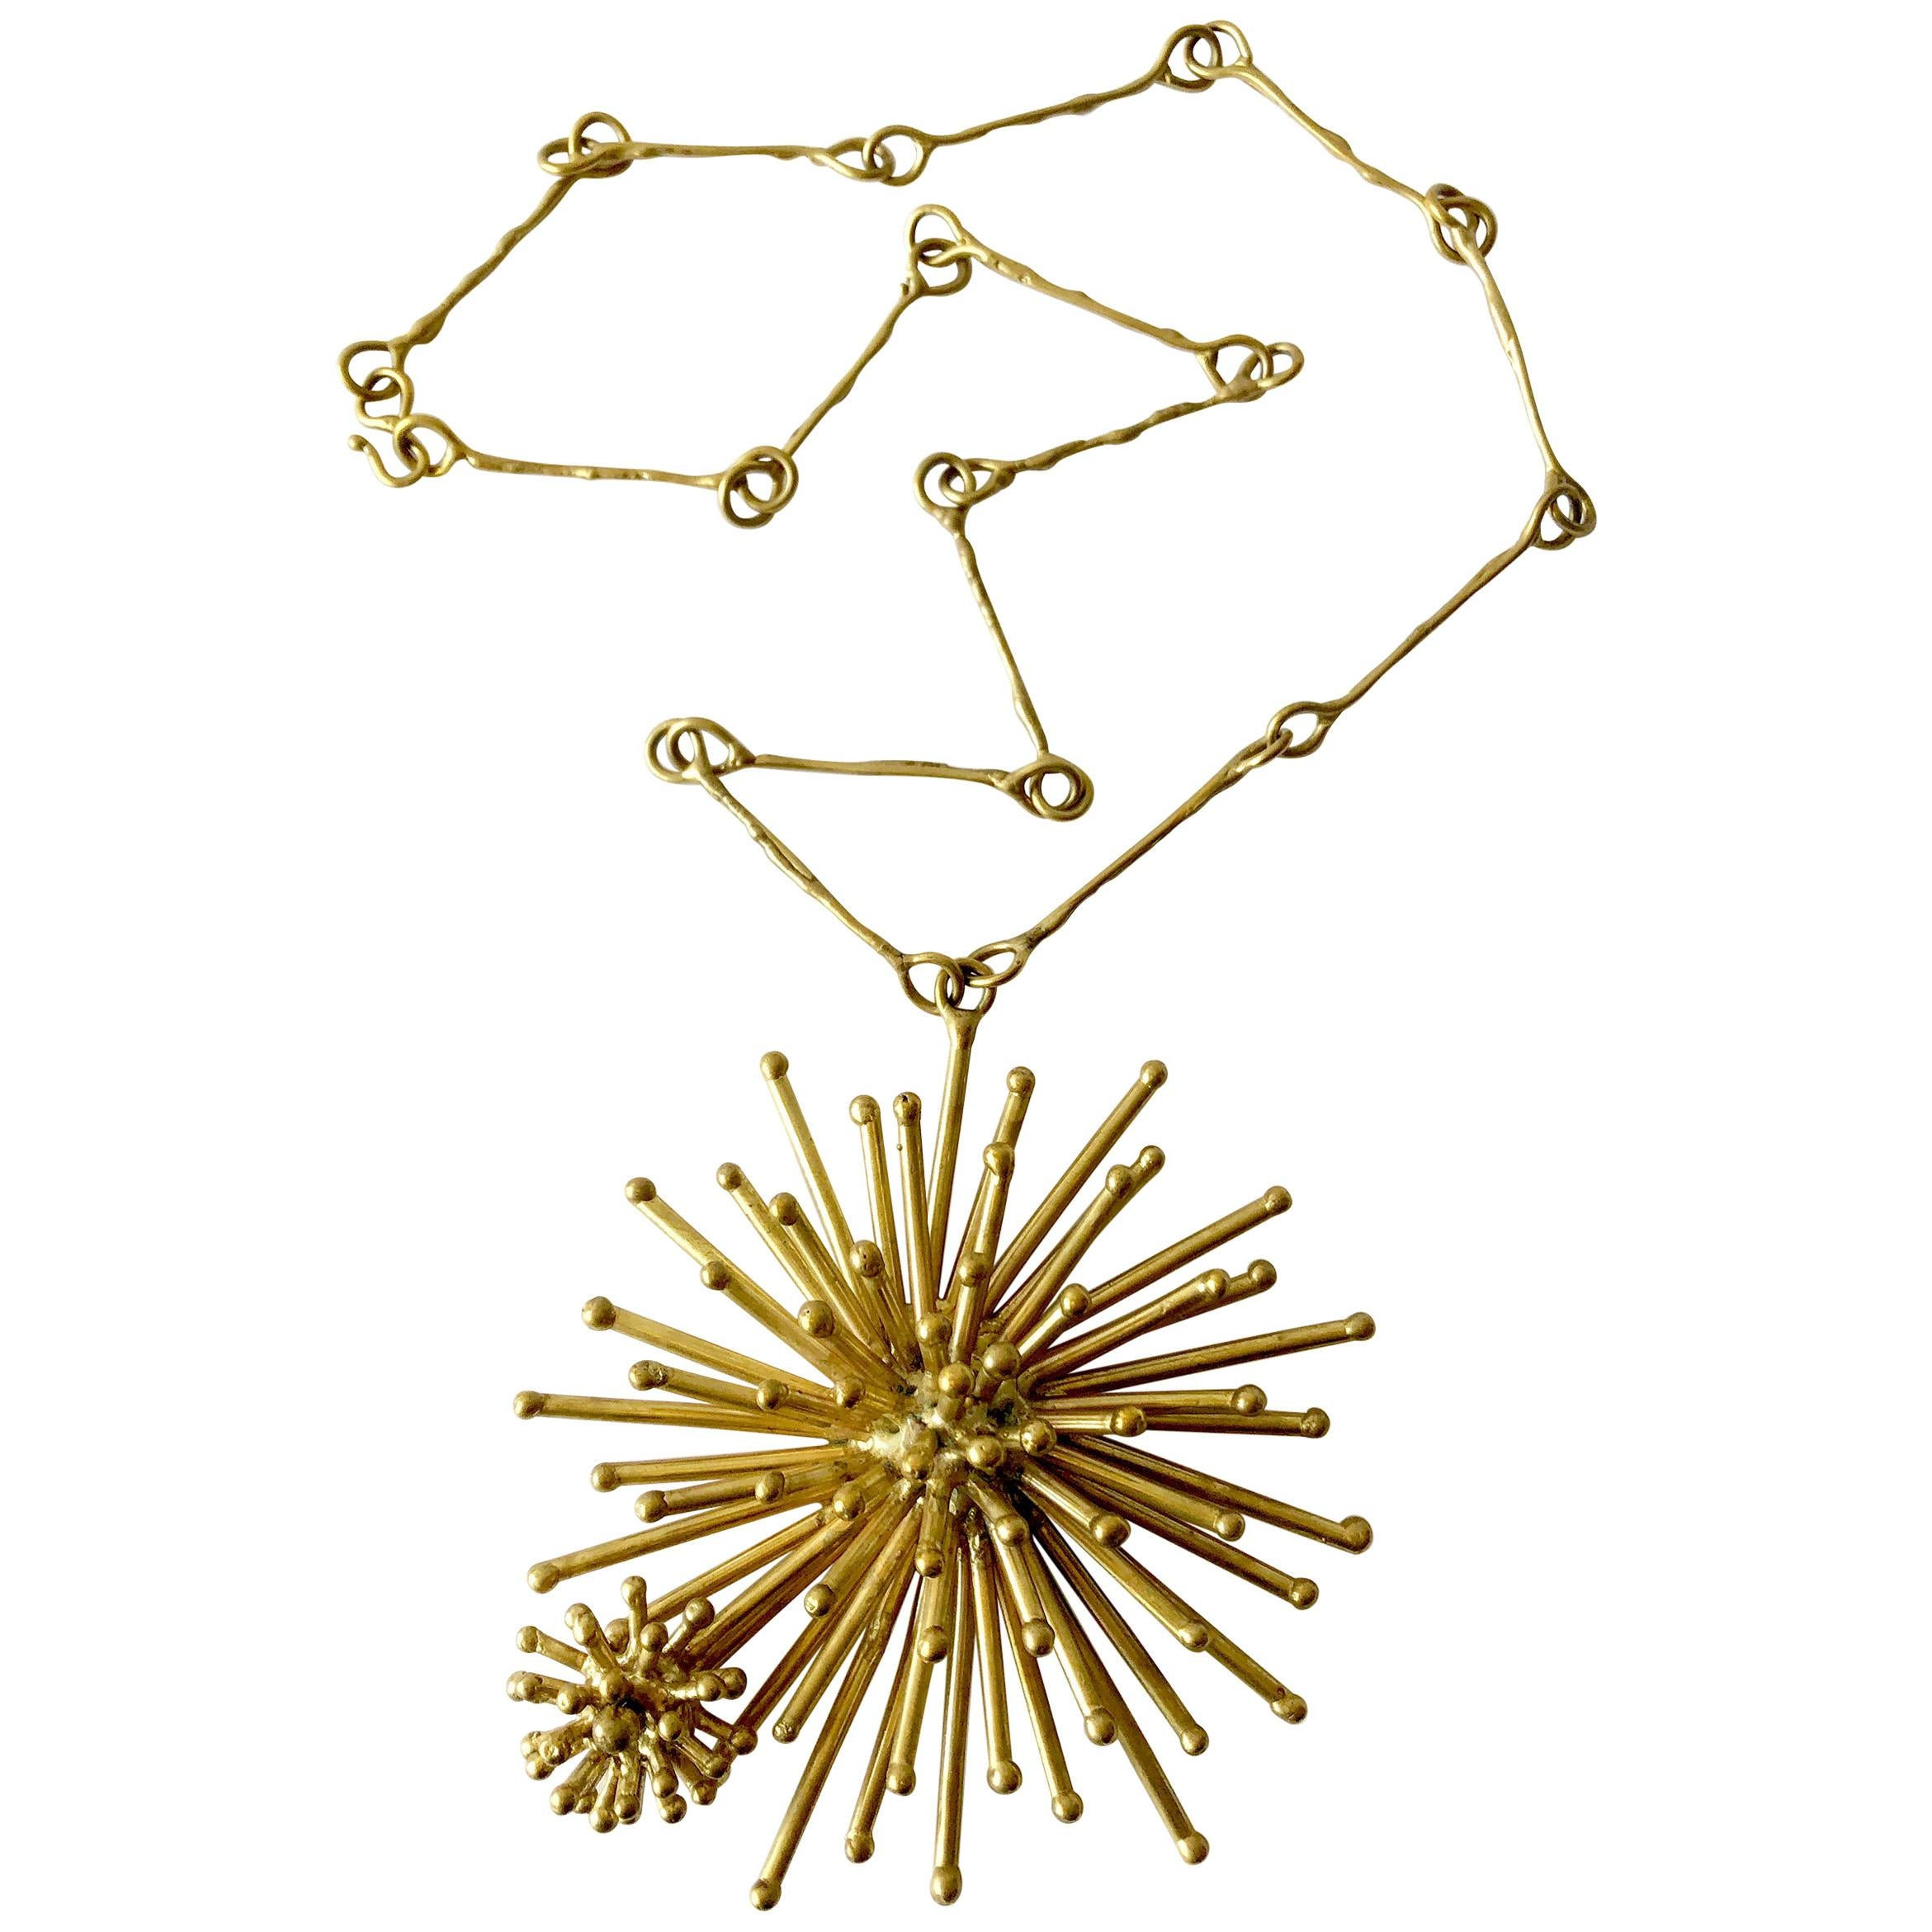 Pal Kepenyes Gold-Plated Bronze Kinetic Starburst Mexican Modernist Necklace